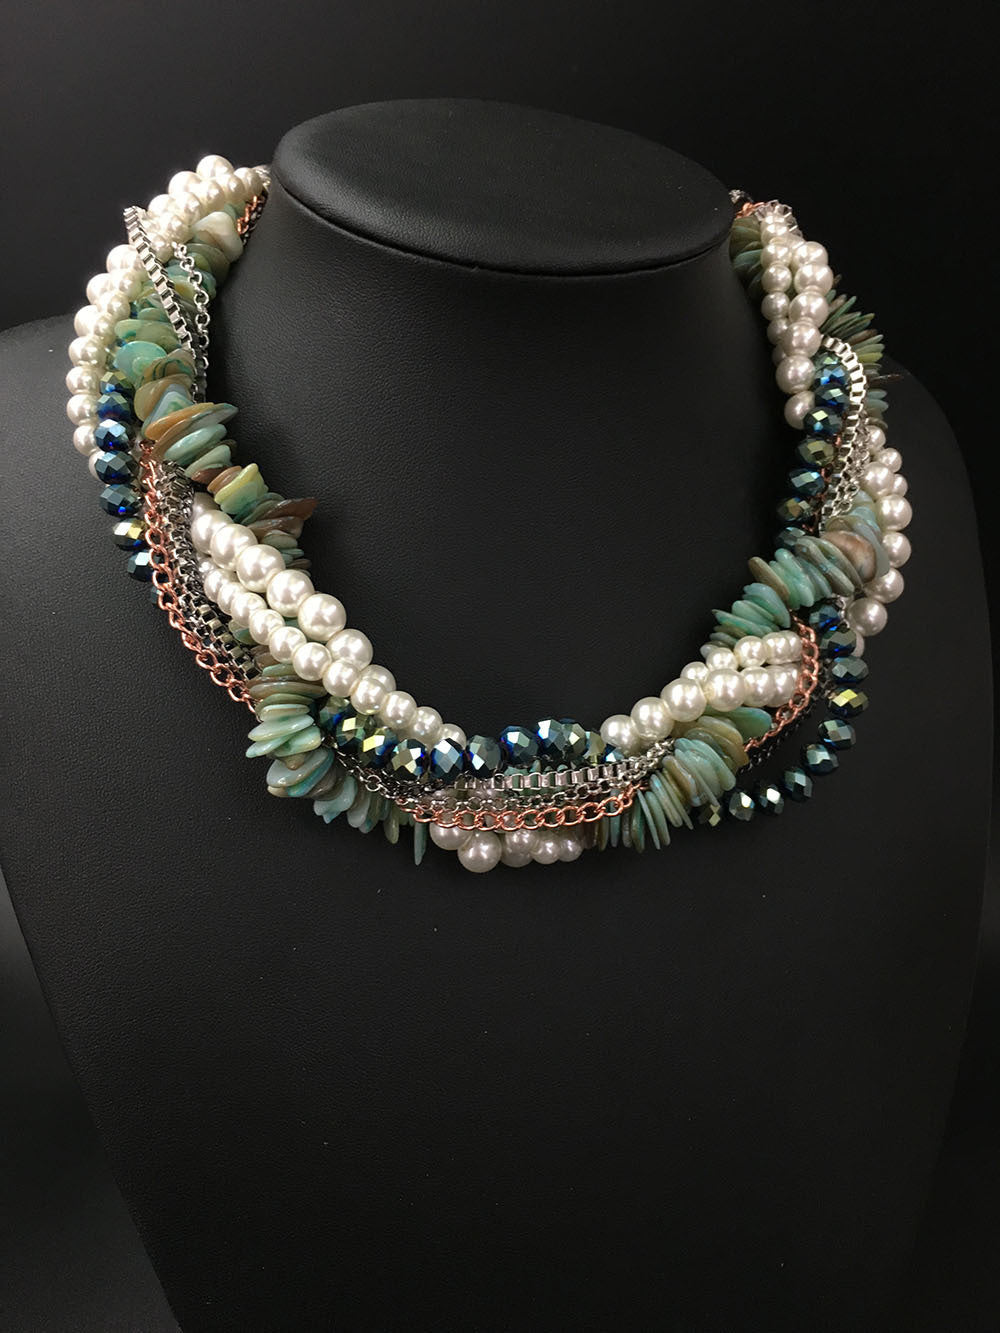 Multi-layer Crystal Necklace - Shell Chain & Pendants - Jahnell's Closet